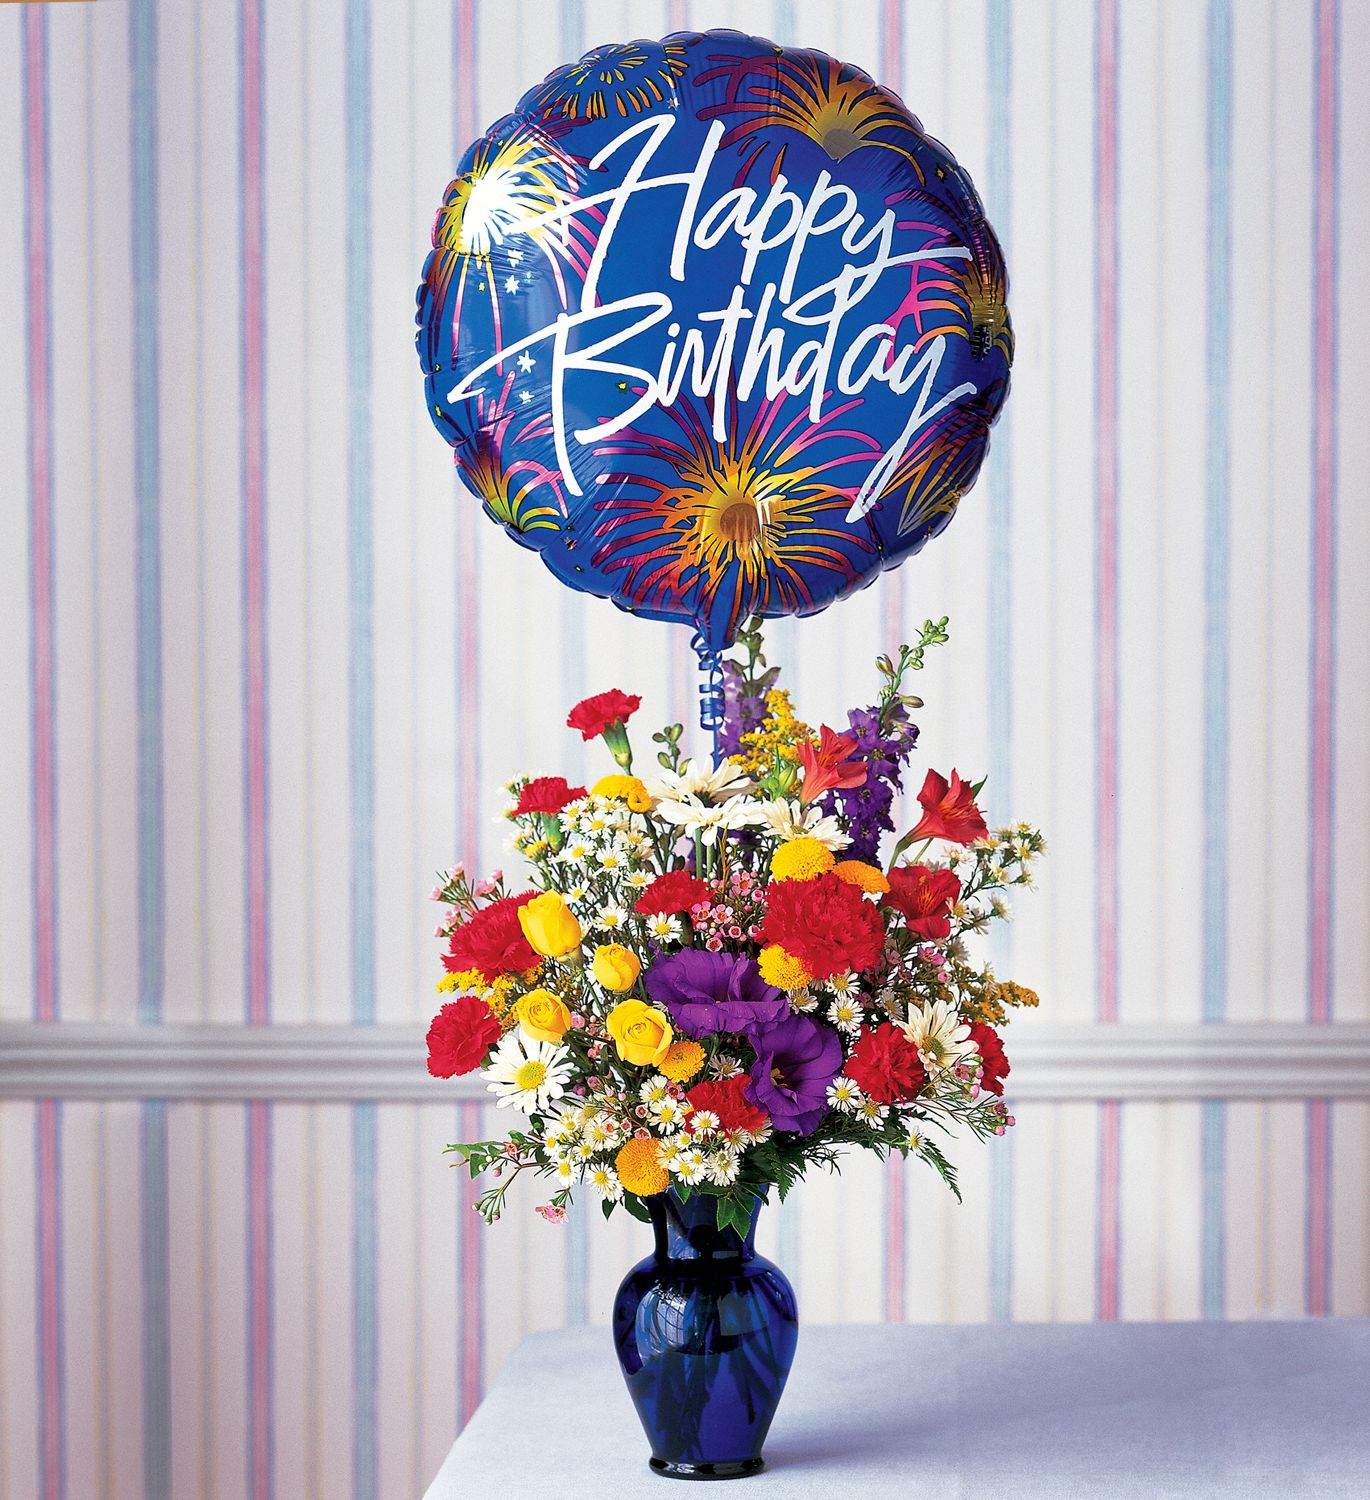 Hunt Valley Florals & Gifts, Hunt Valley, Maryland - Birthday Fireworks, picture